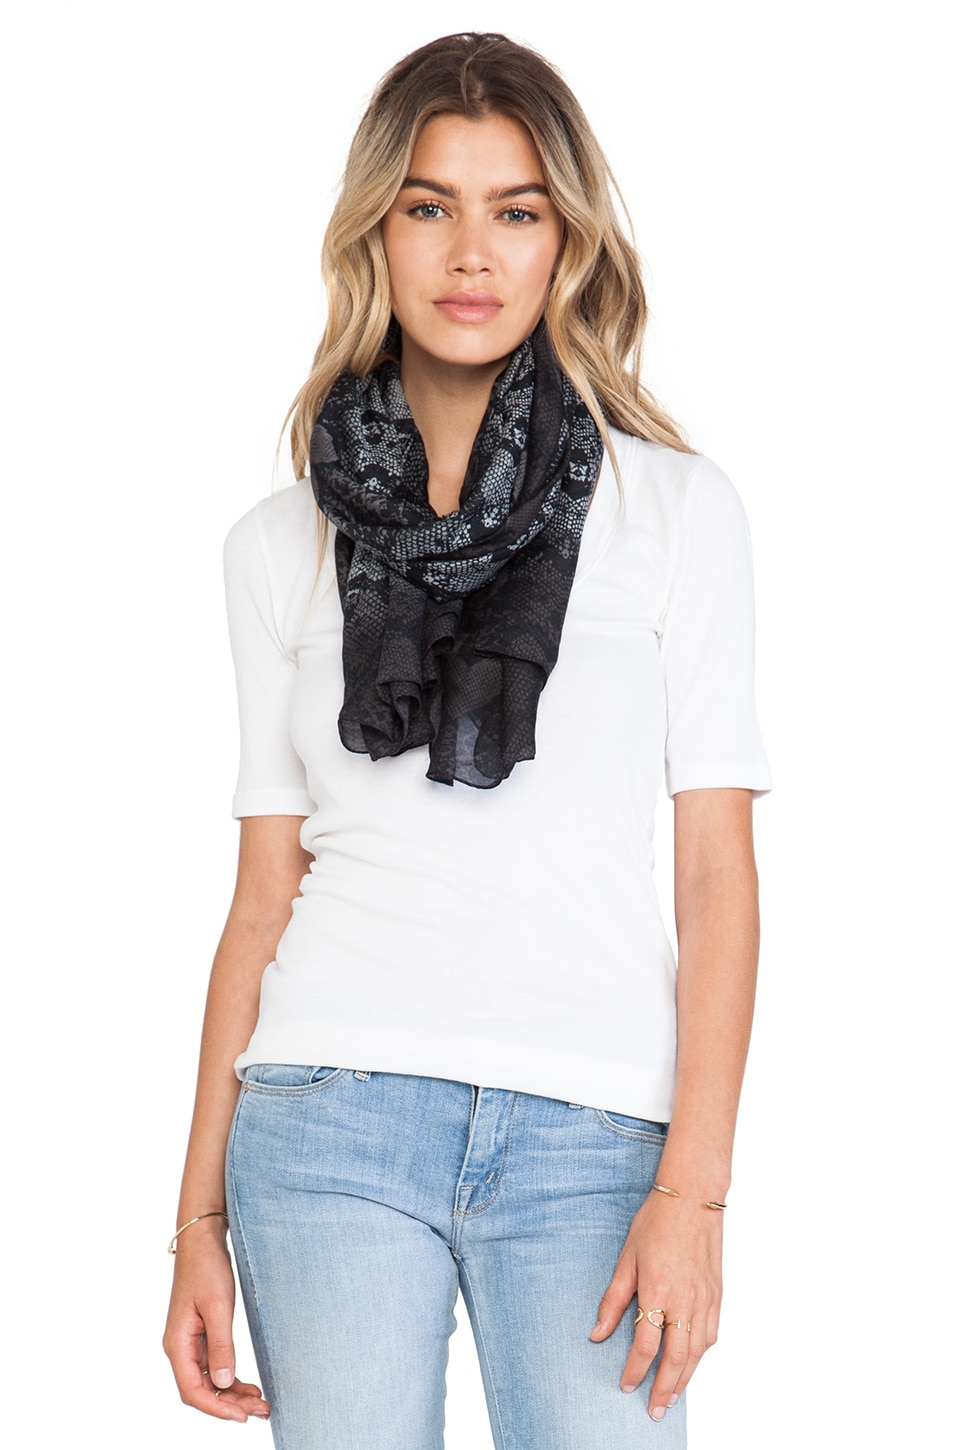 Marc by Marc Jacobs Heart Snake Print Scarf in Black Multi